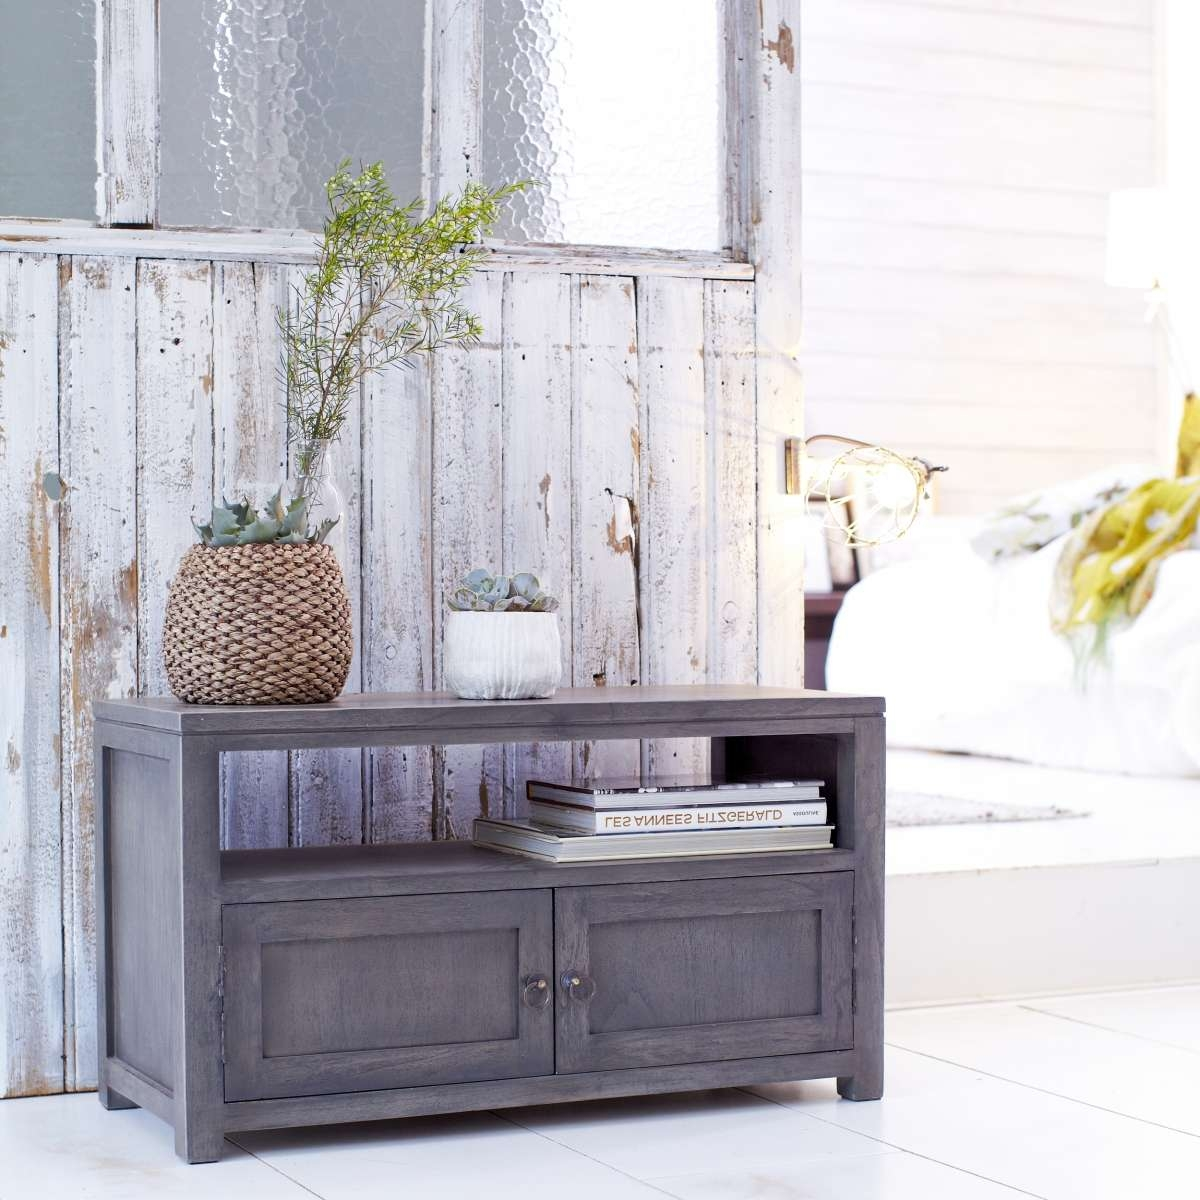 Tikamoon Solid Painted Grey Small Wood Mindi Tv Stand Tv Cabinet Inside Grey Wood Tv Stands (View 8 of 15)